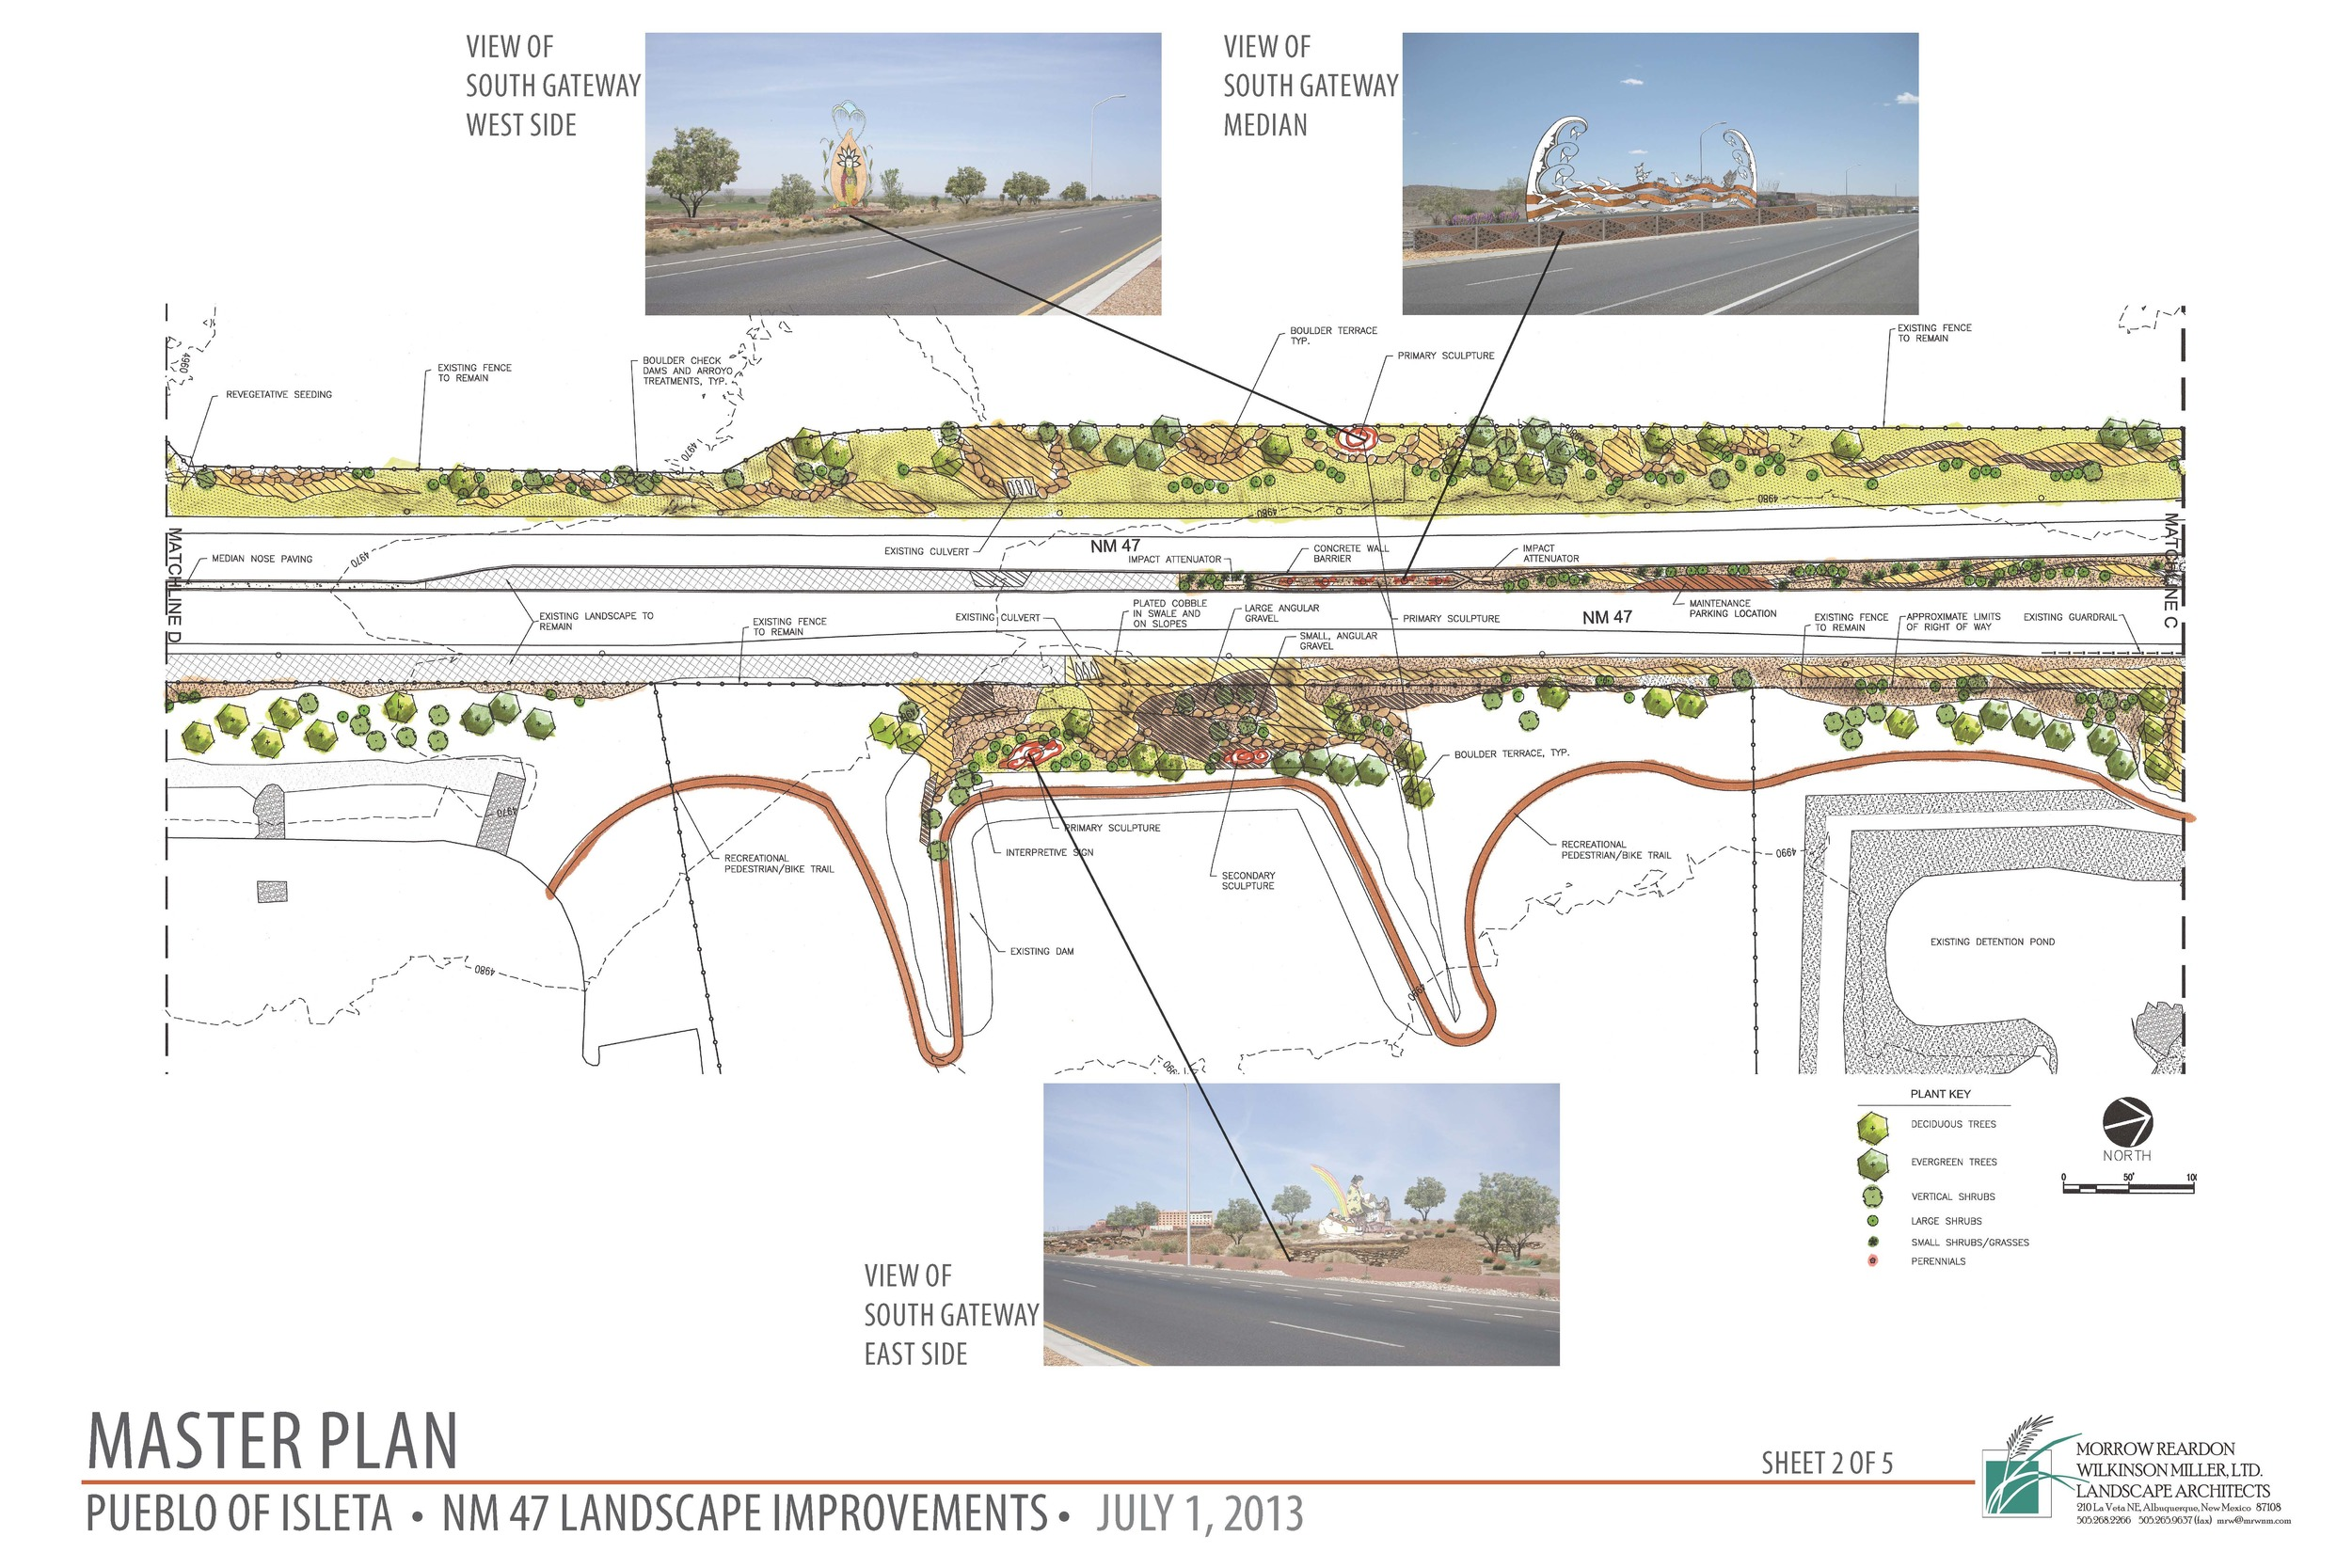 Master plan pueblo of isleta highway streetscape improvements